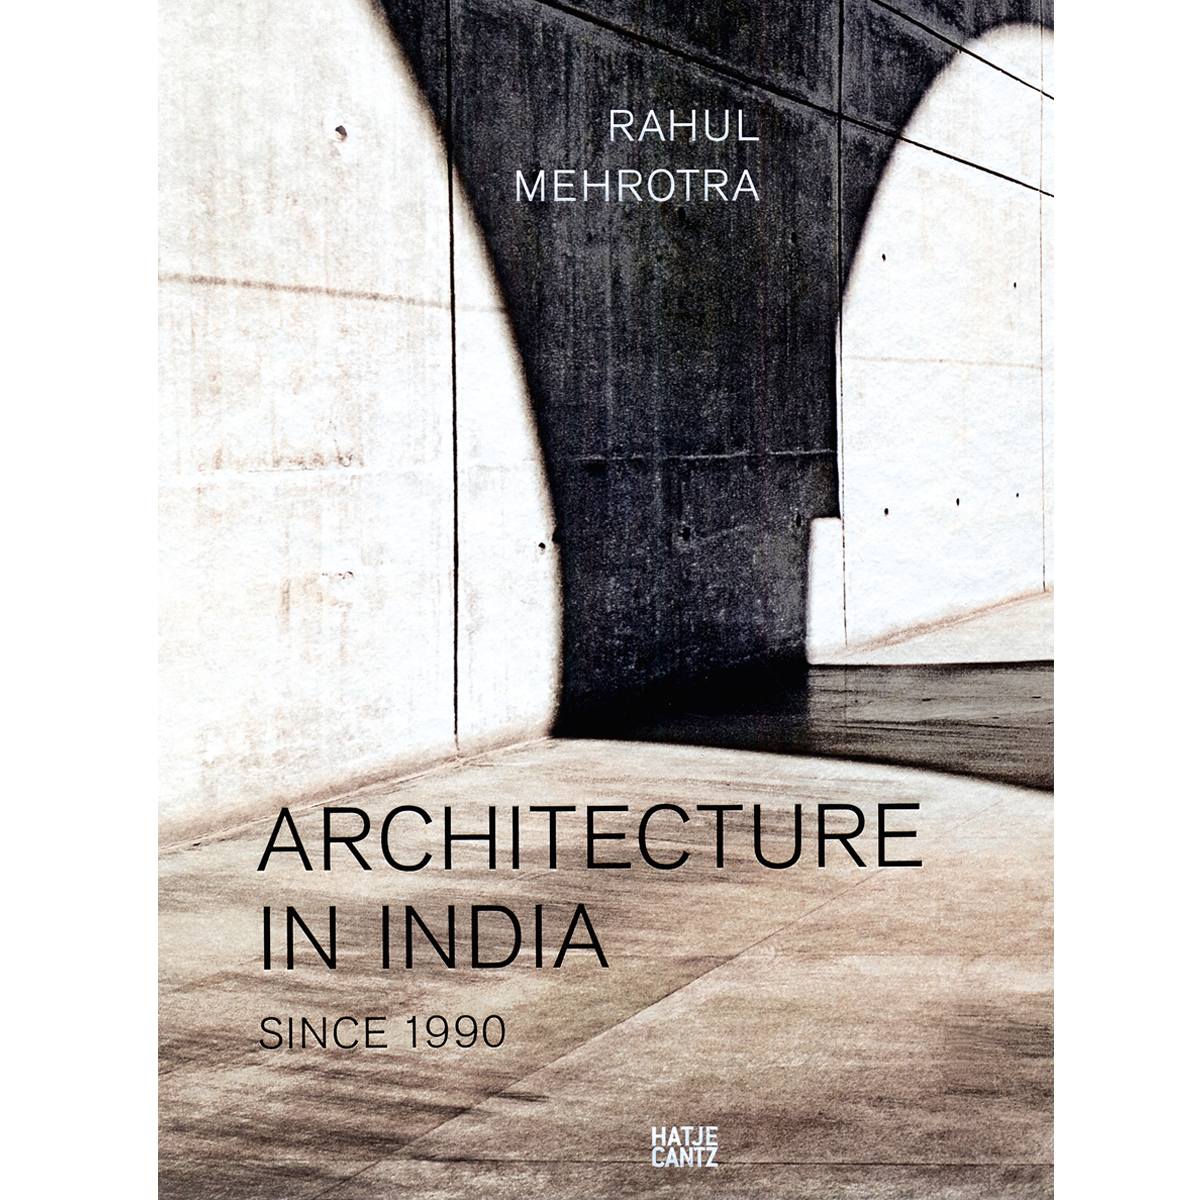 Architecture in India since 1990